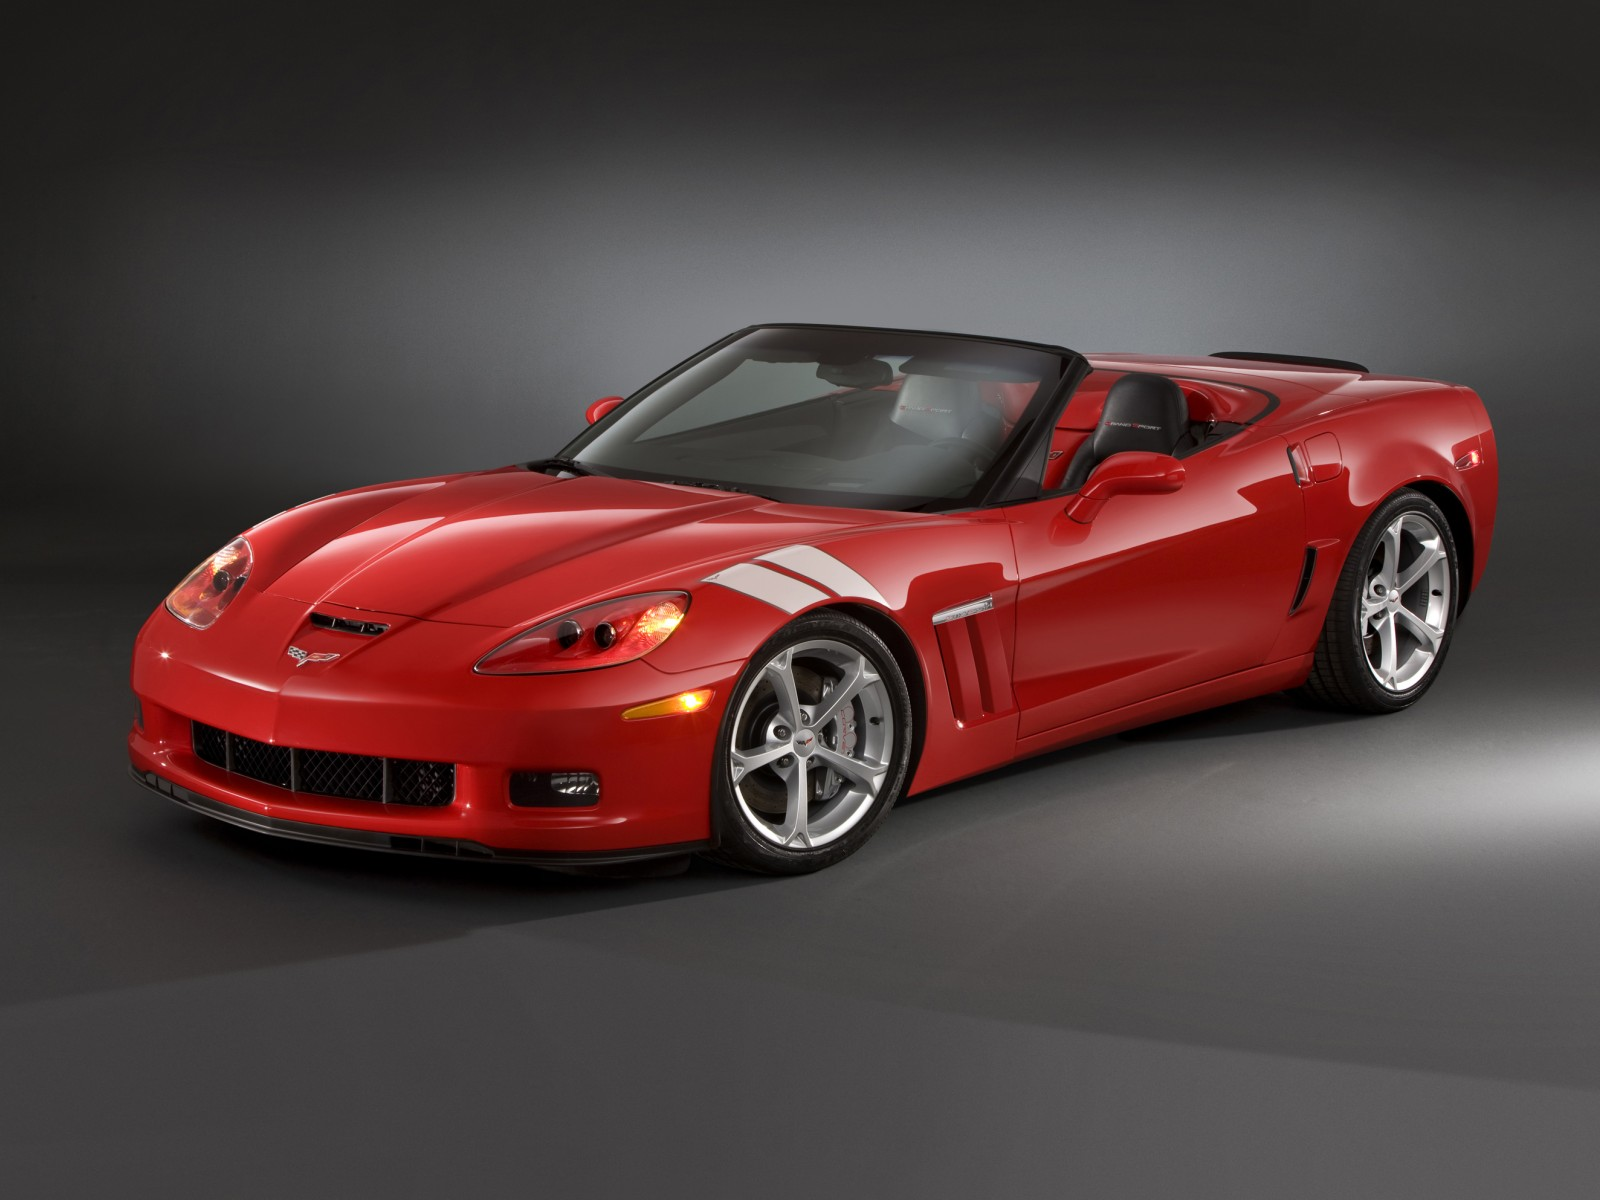 2010 chevrolet corvette grand sport motor desktop. Black Bedroom Furniture Sets. Home Design Ideas